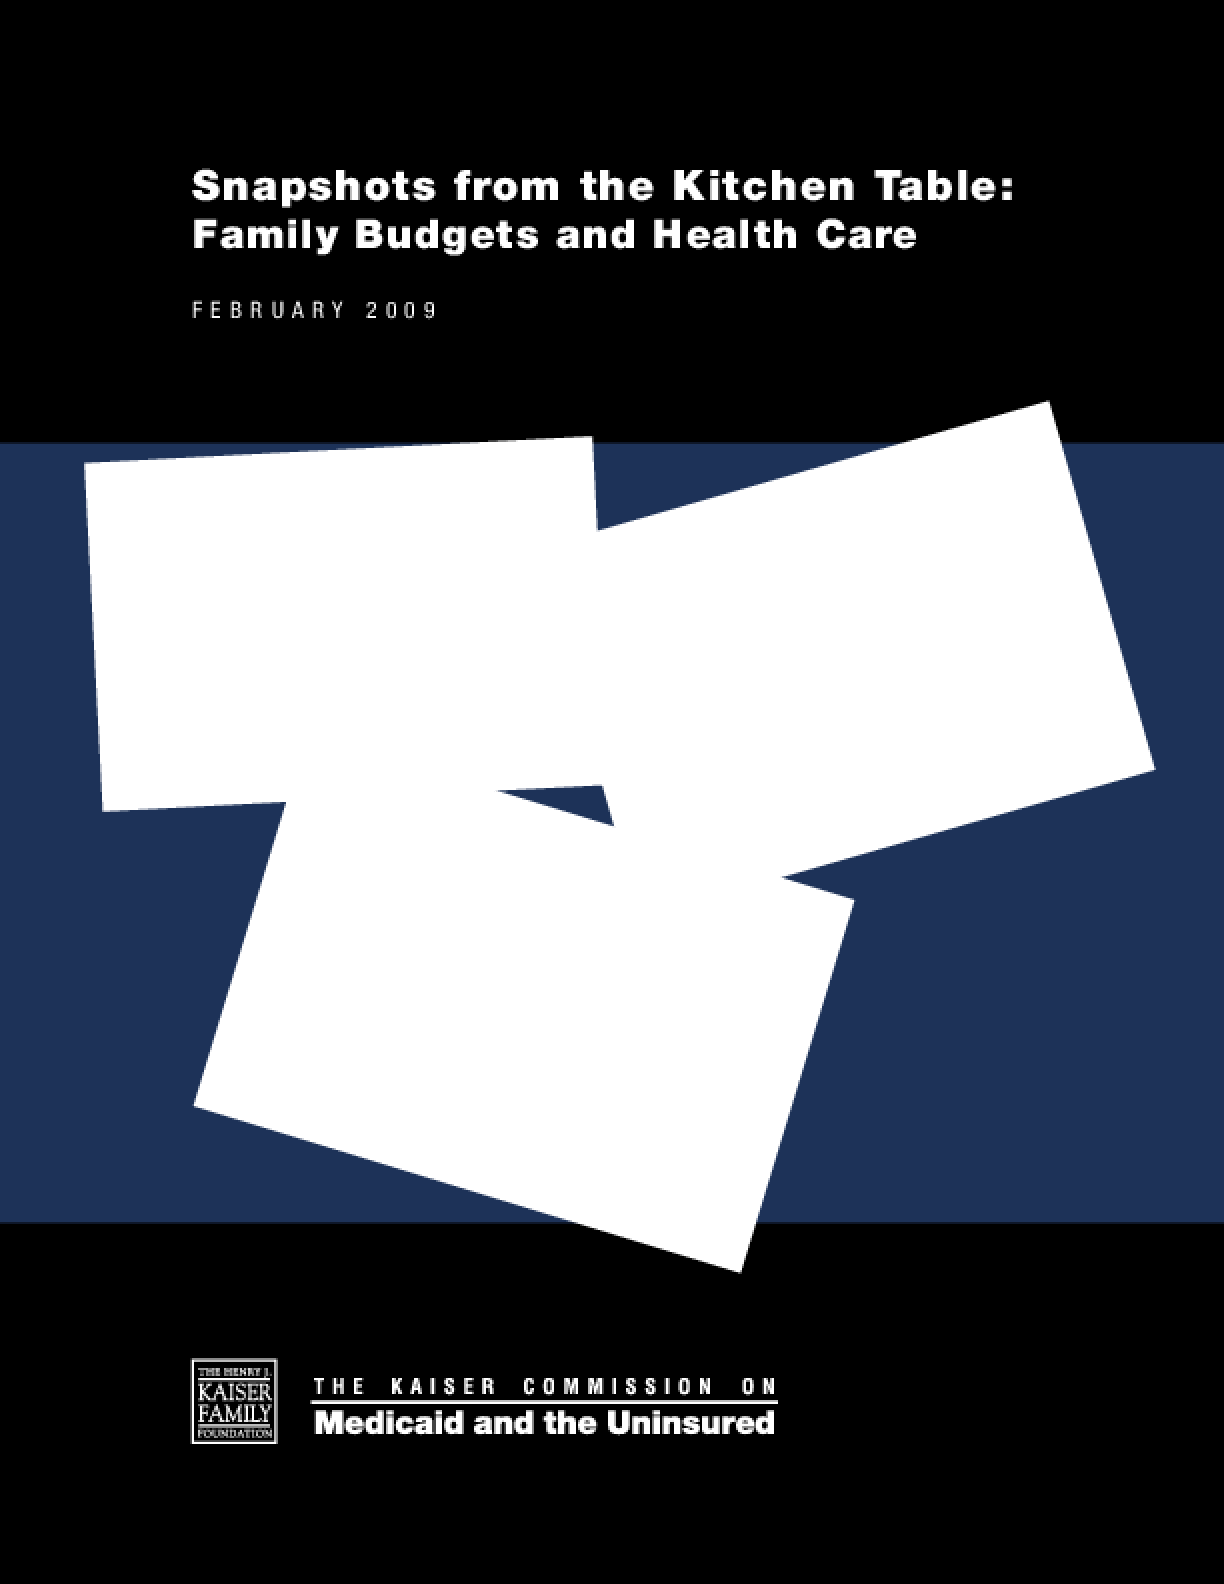 Snapshots From the Kitchen Table: Family Budgets and Health Care